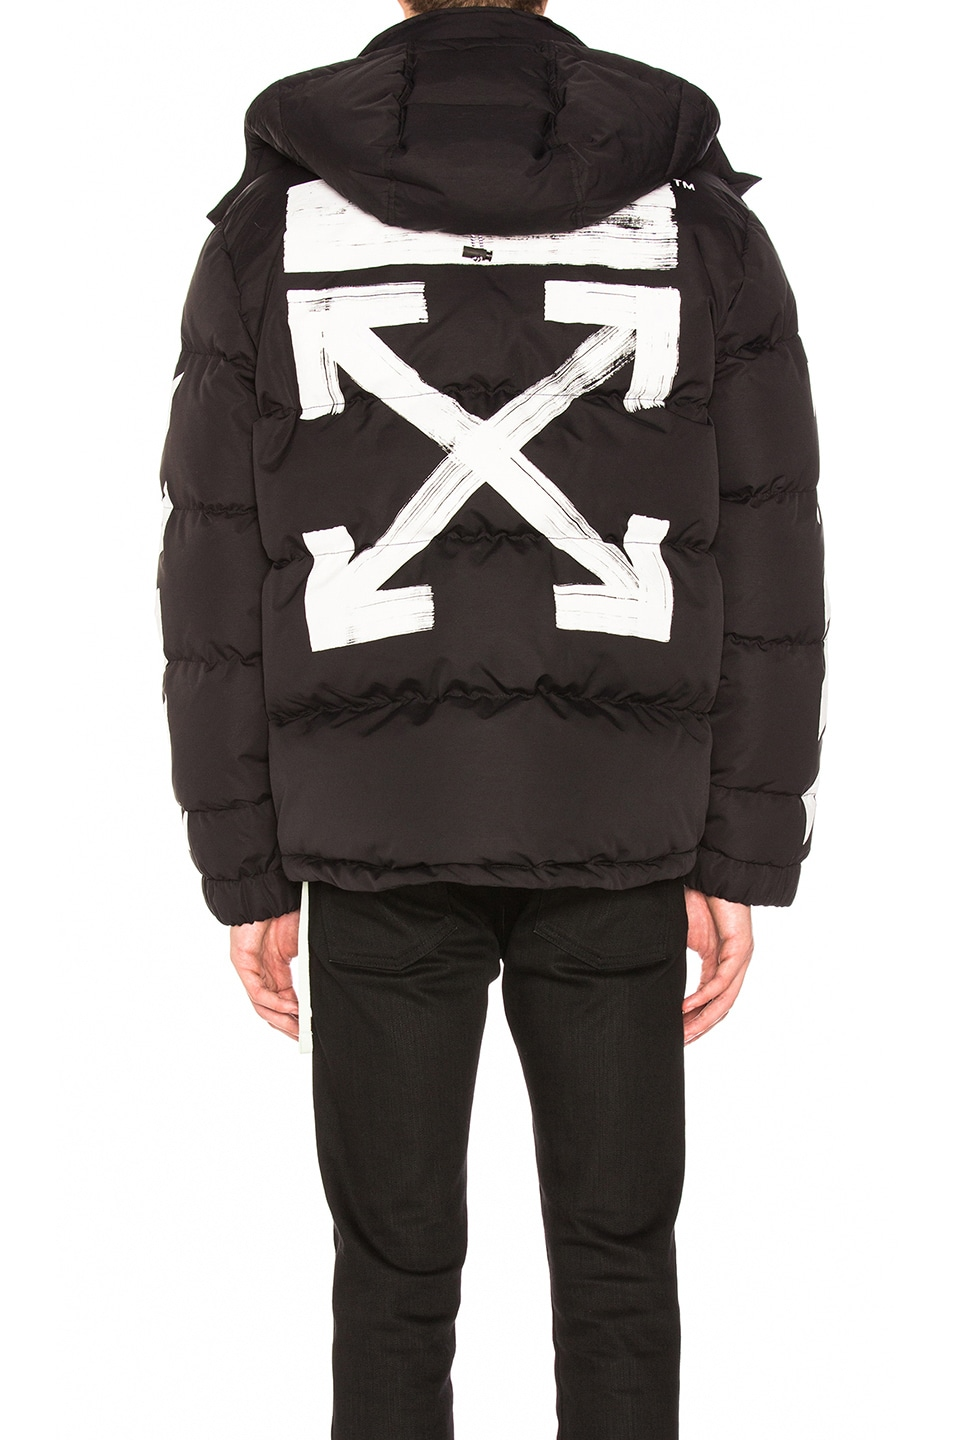 Image 4 of OFF-WHITE Diagonal Brushed Down Jacket in Black   White 3bca093137db